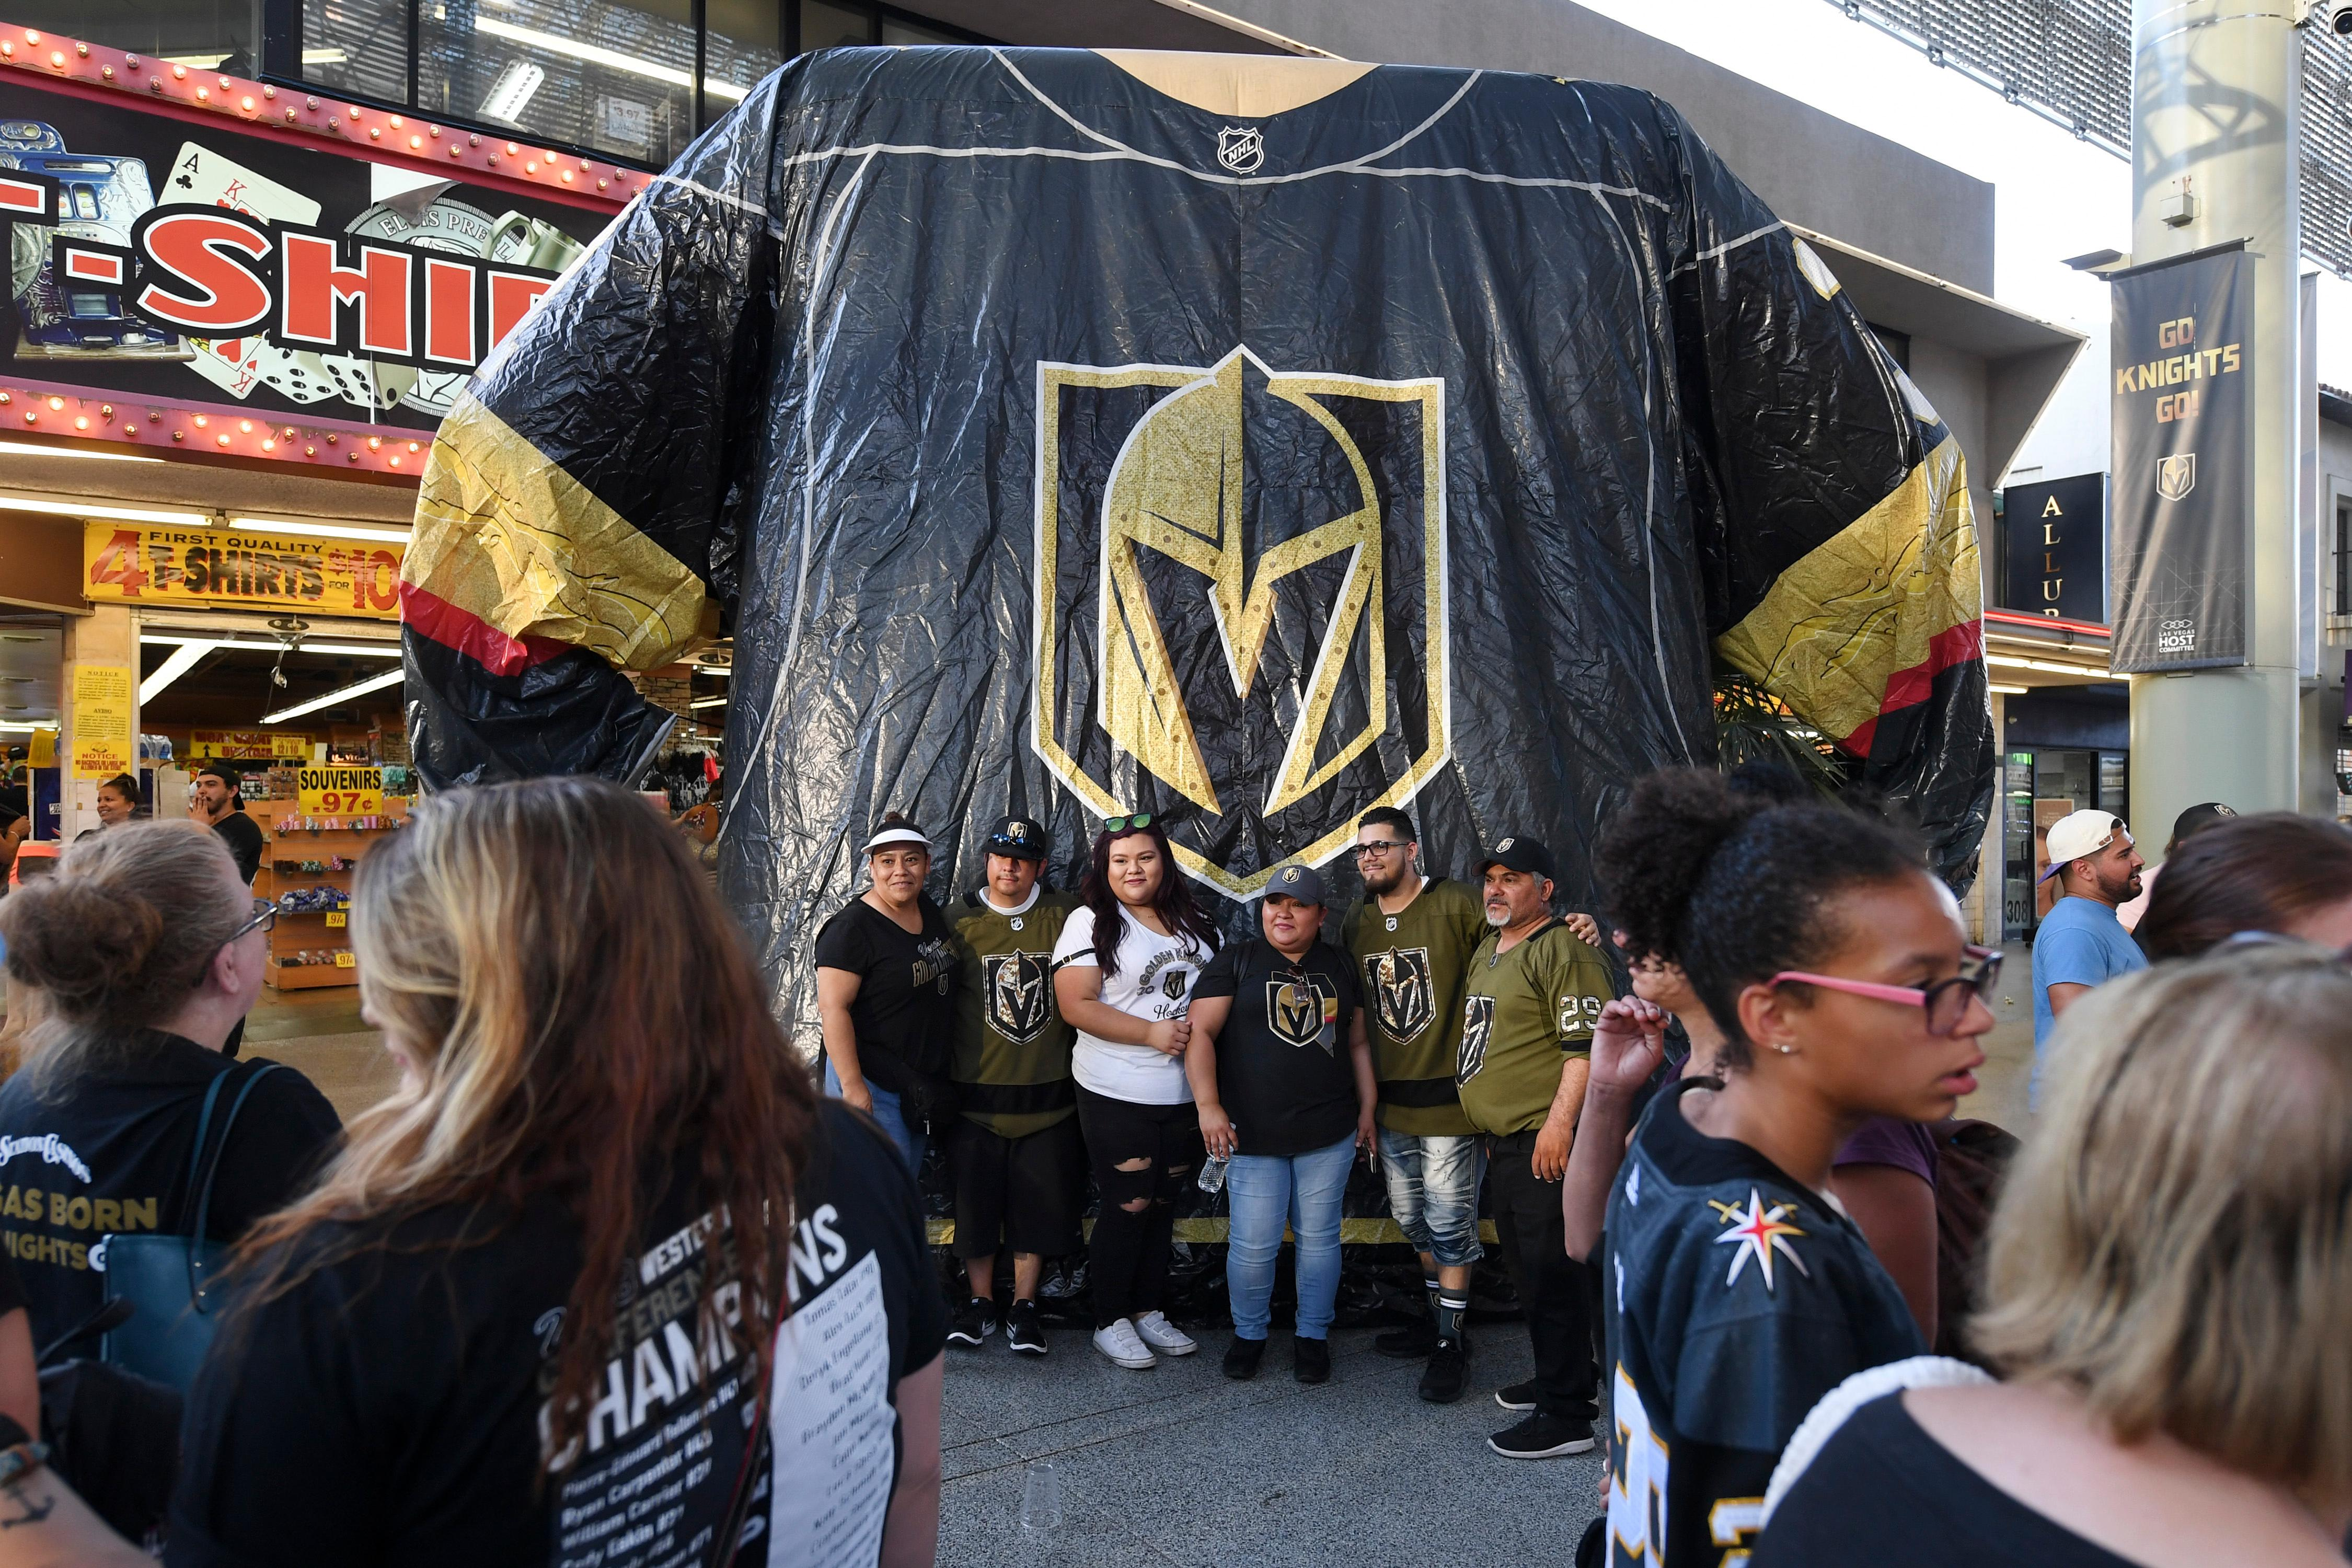 Fans have their photo taken in front of an oversized hockey sweater during a Vegas Golden Knights Stick Salute to Vegas fan appreciation rally at the Fremont Street Experience Wednesday, June 13, 2018. CREDIT: Sam Morris/Las Vegas News Bureau